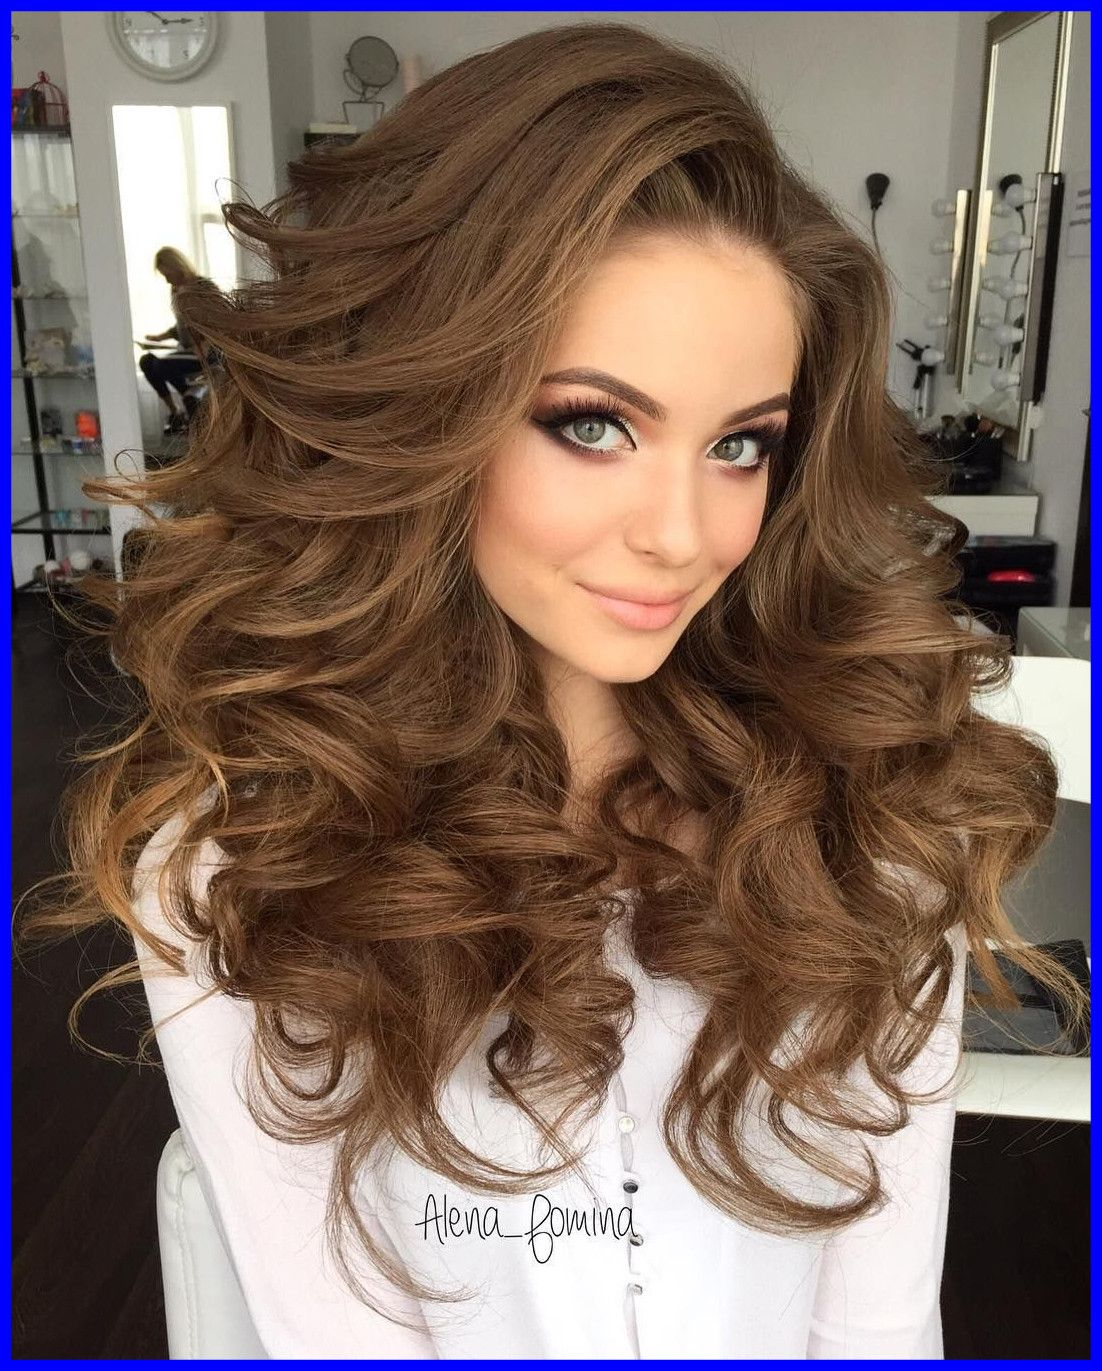 image result for hairstyles for frizzy curly long hair